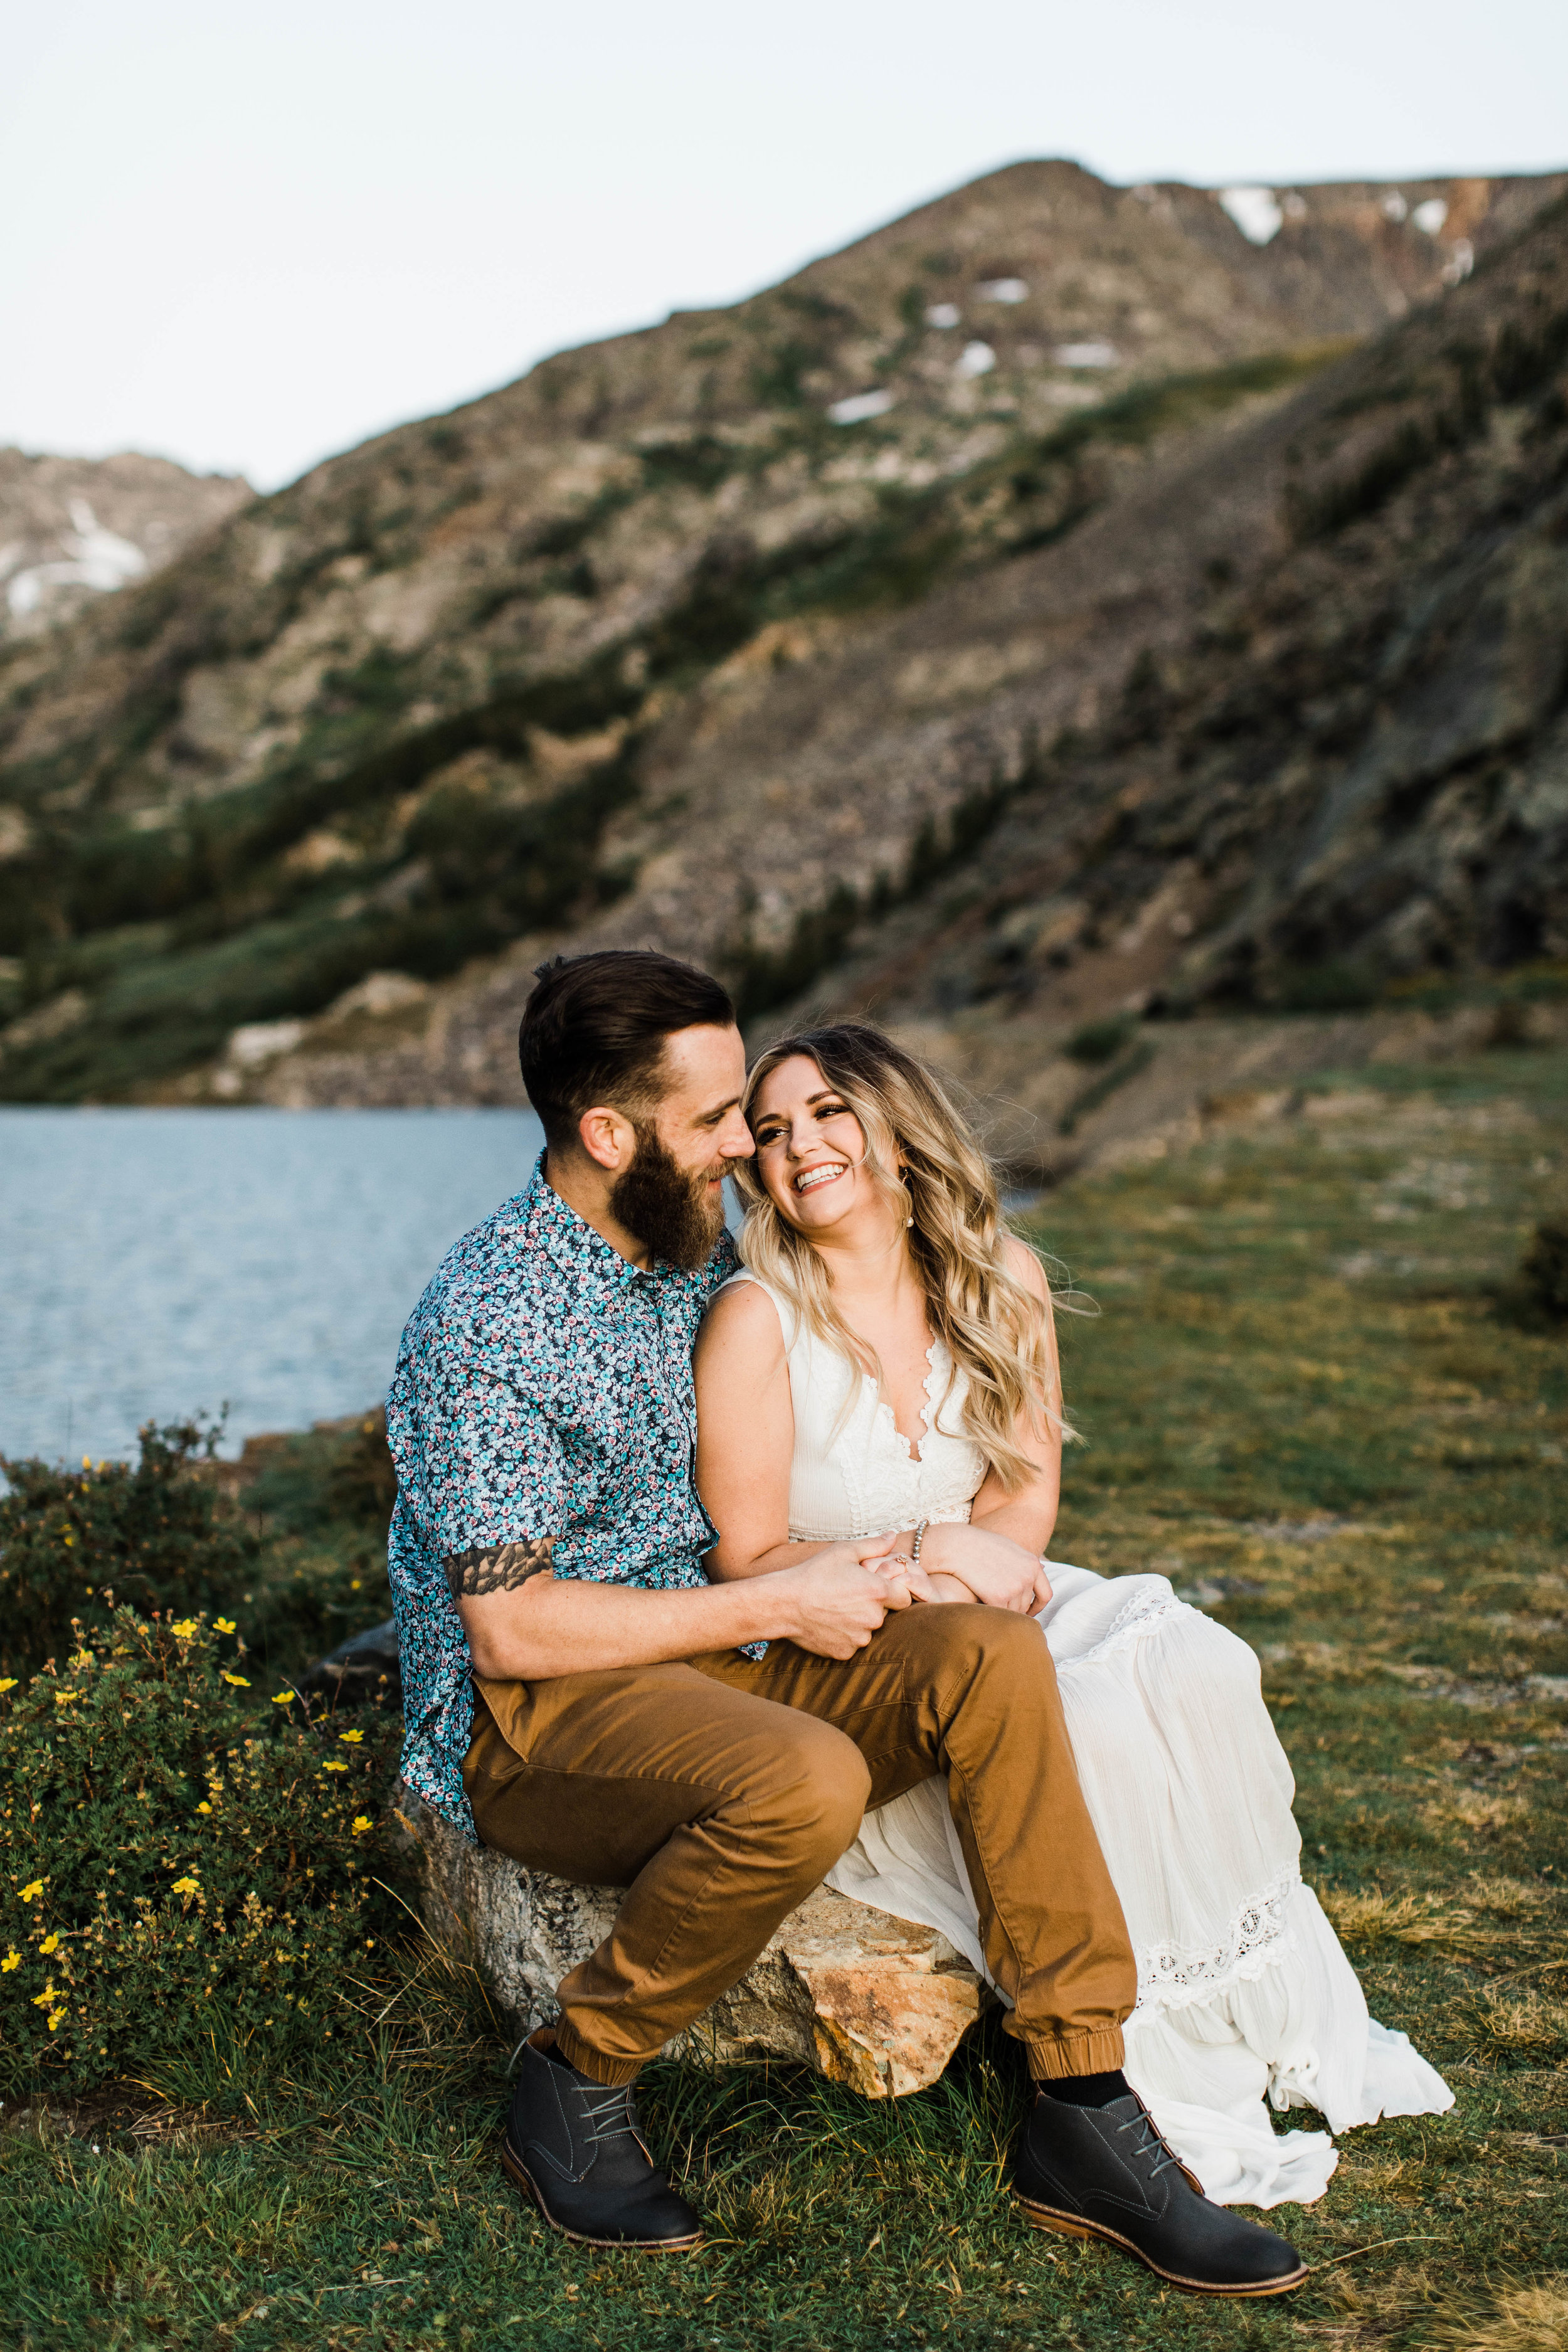 Engaged couples hanging out during their Breckenridge adventure engagement photos at an alpine lake | Breckenridge elopement in the Rocky Mountains